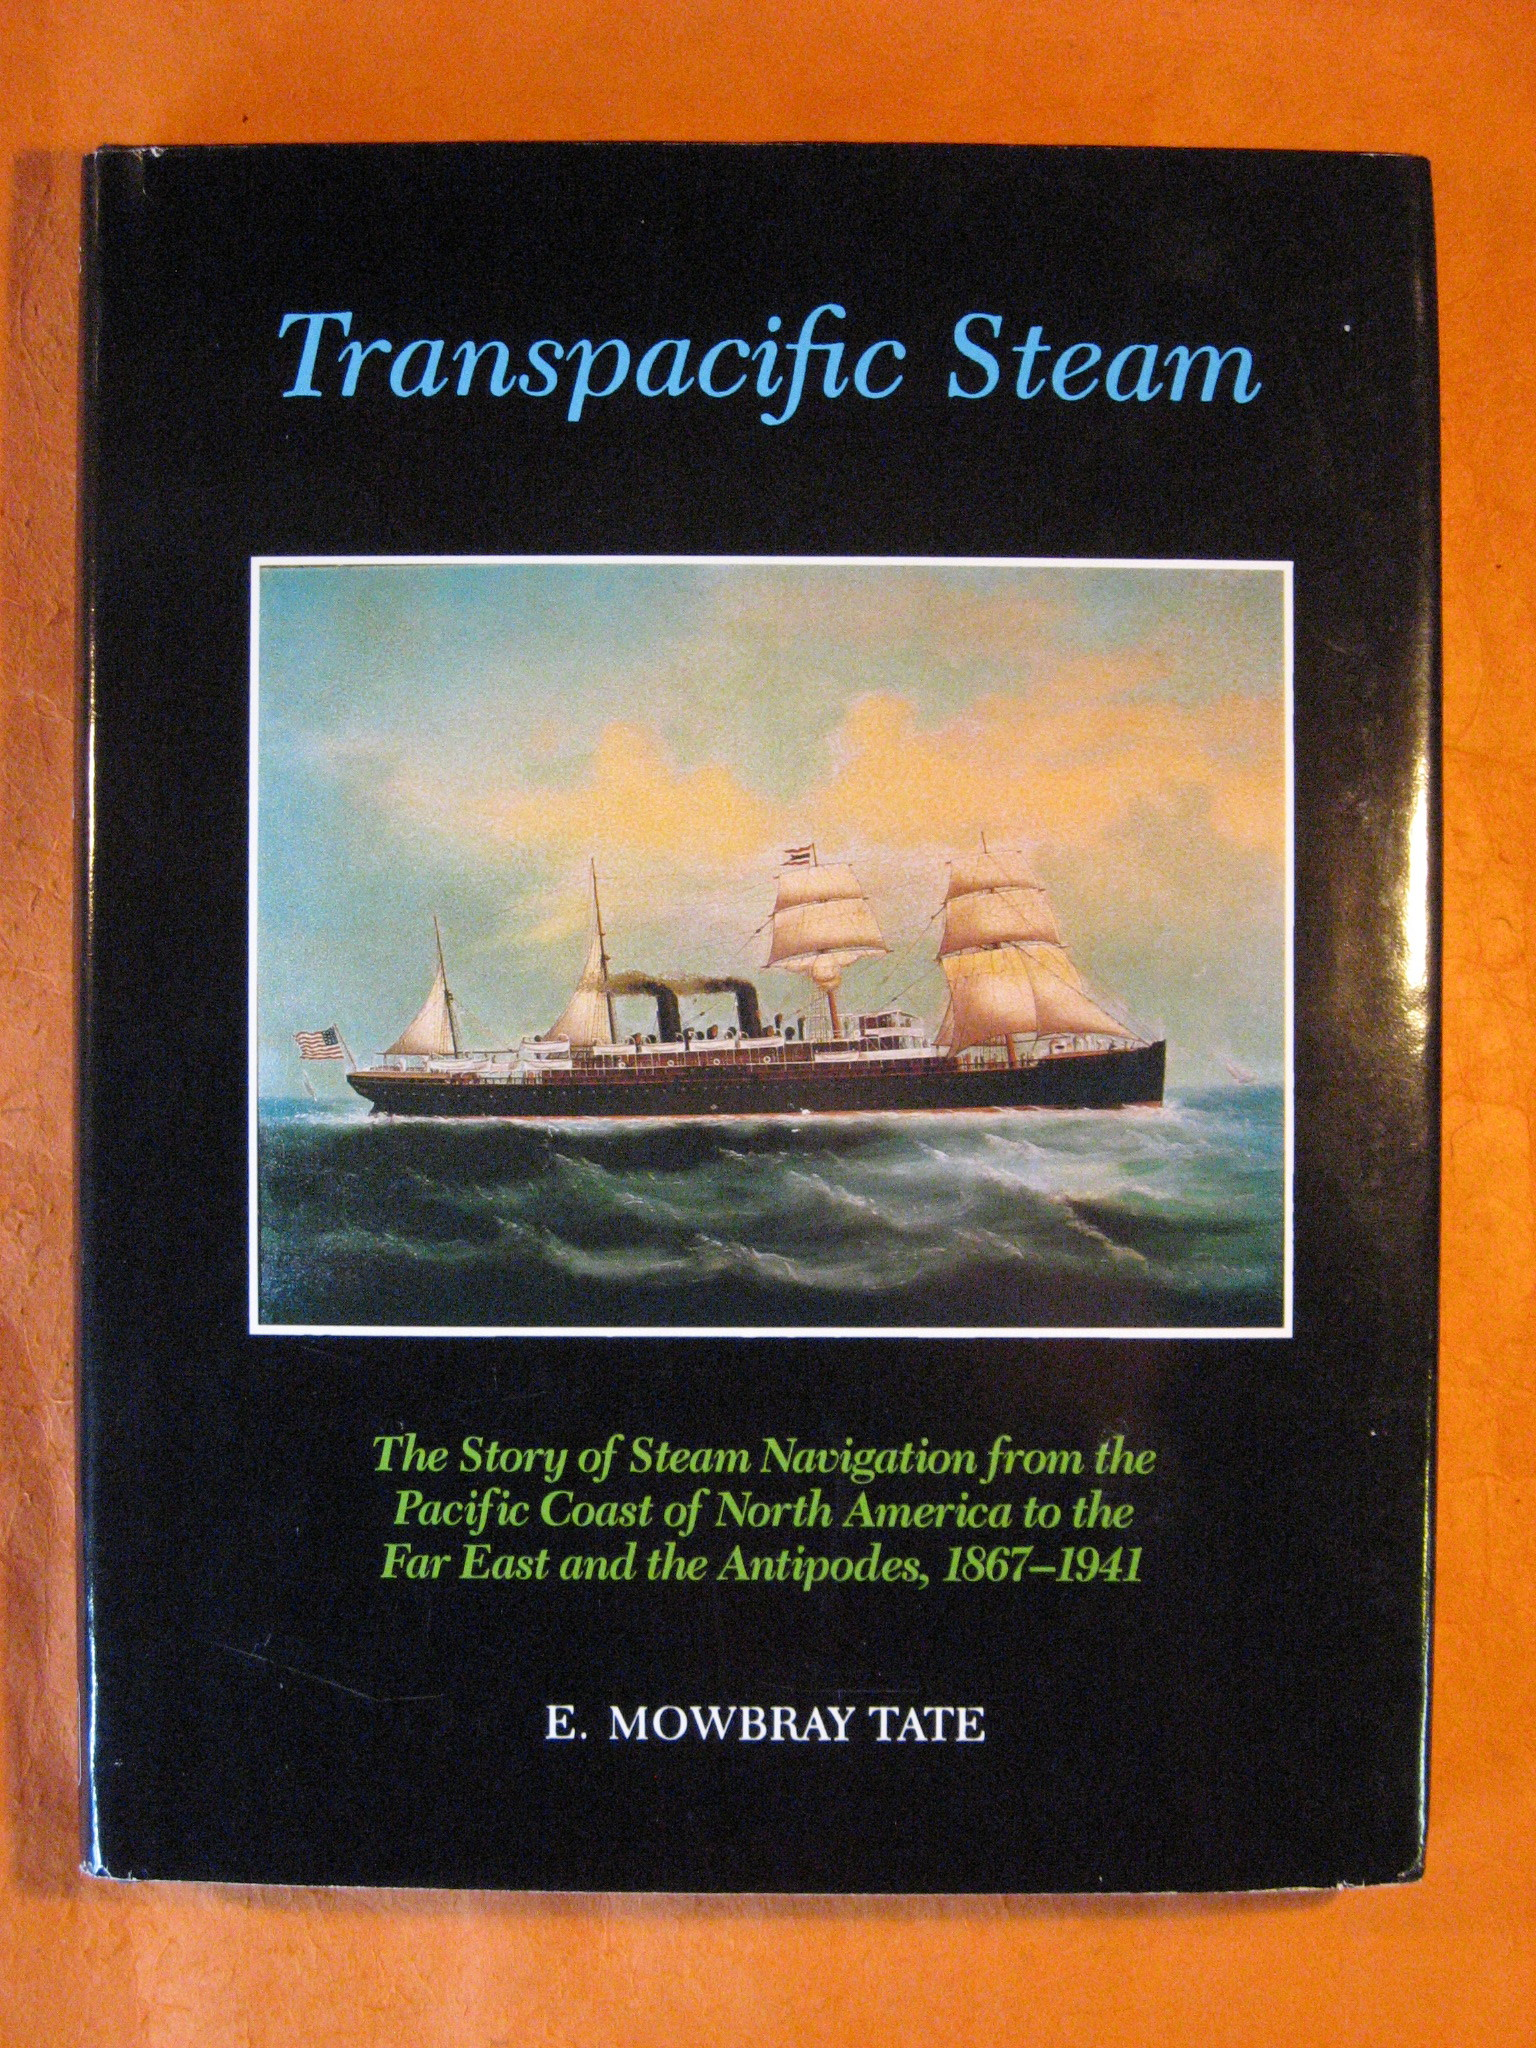 Transpacific Steam: The Story of Steam Navigation from the Pacific Coast of North America to the Far East and the Antipodes, 1867-1941, Tate, E. Mowbray